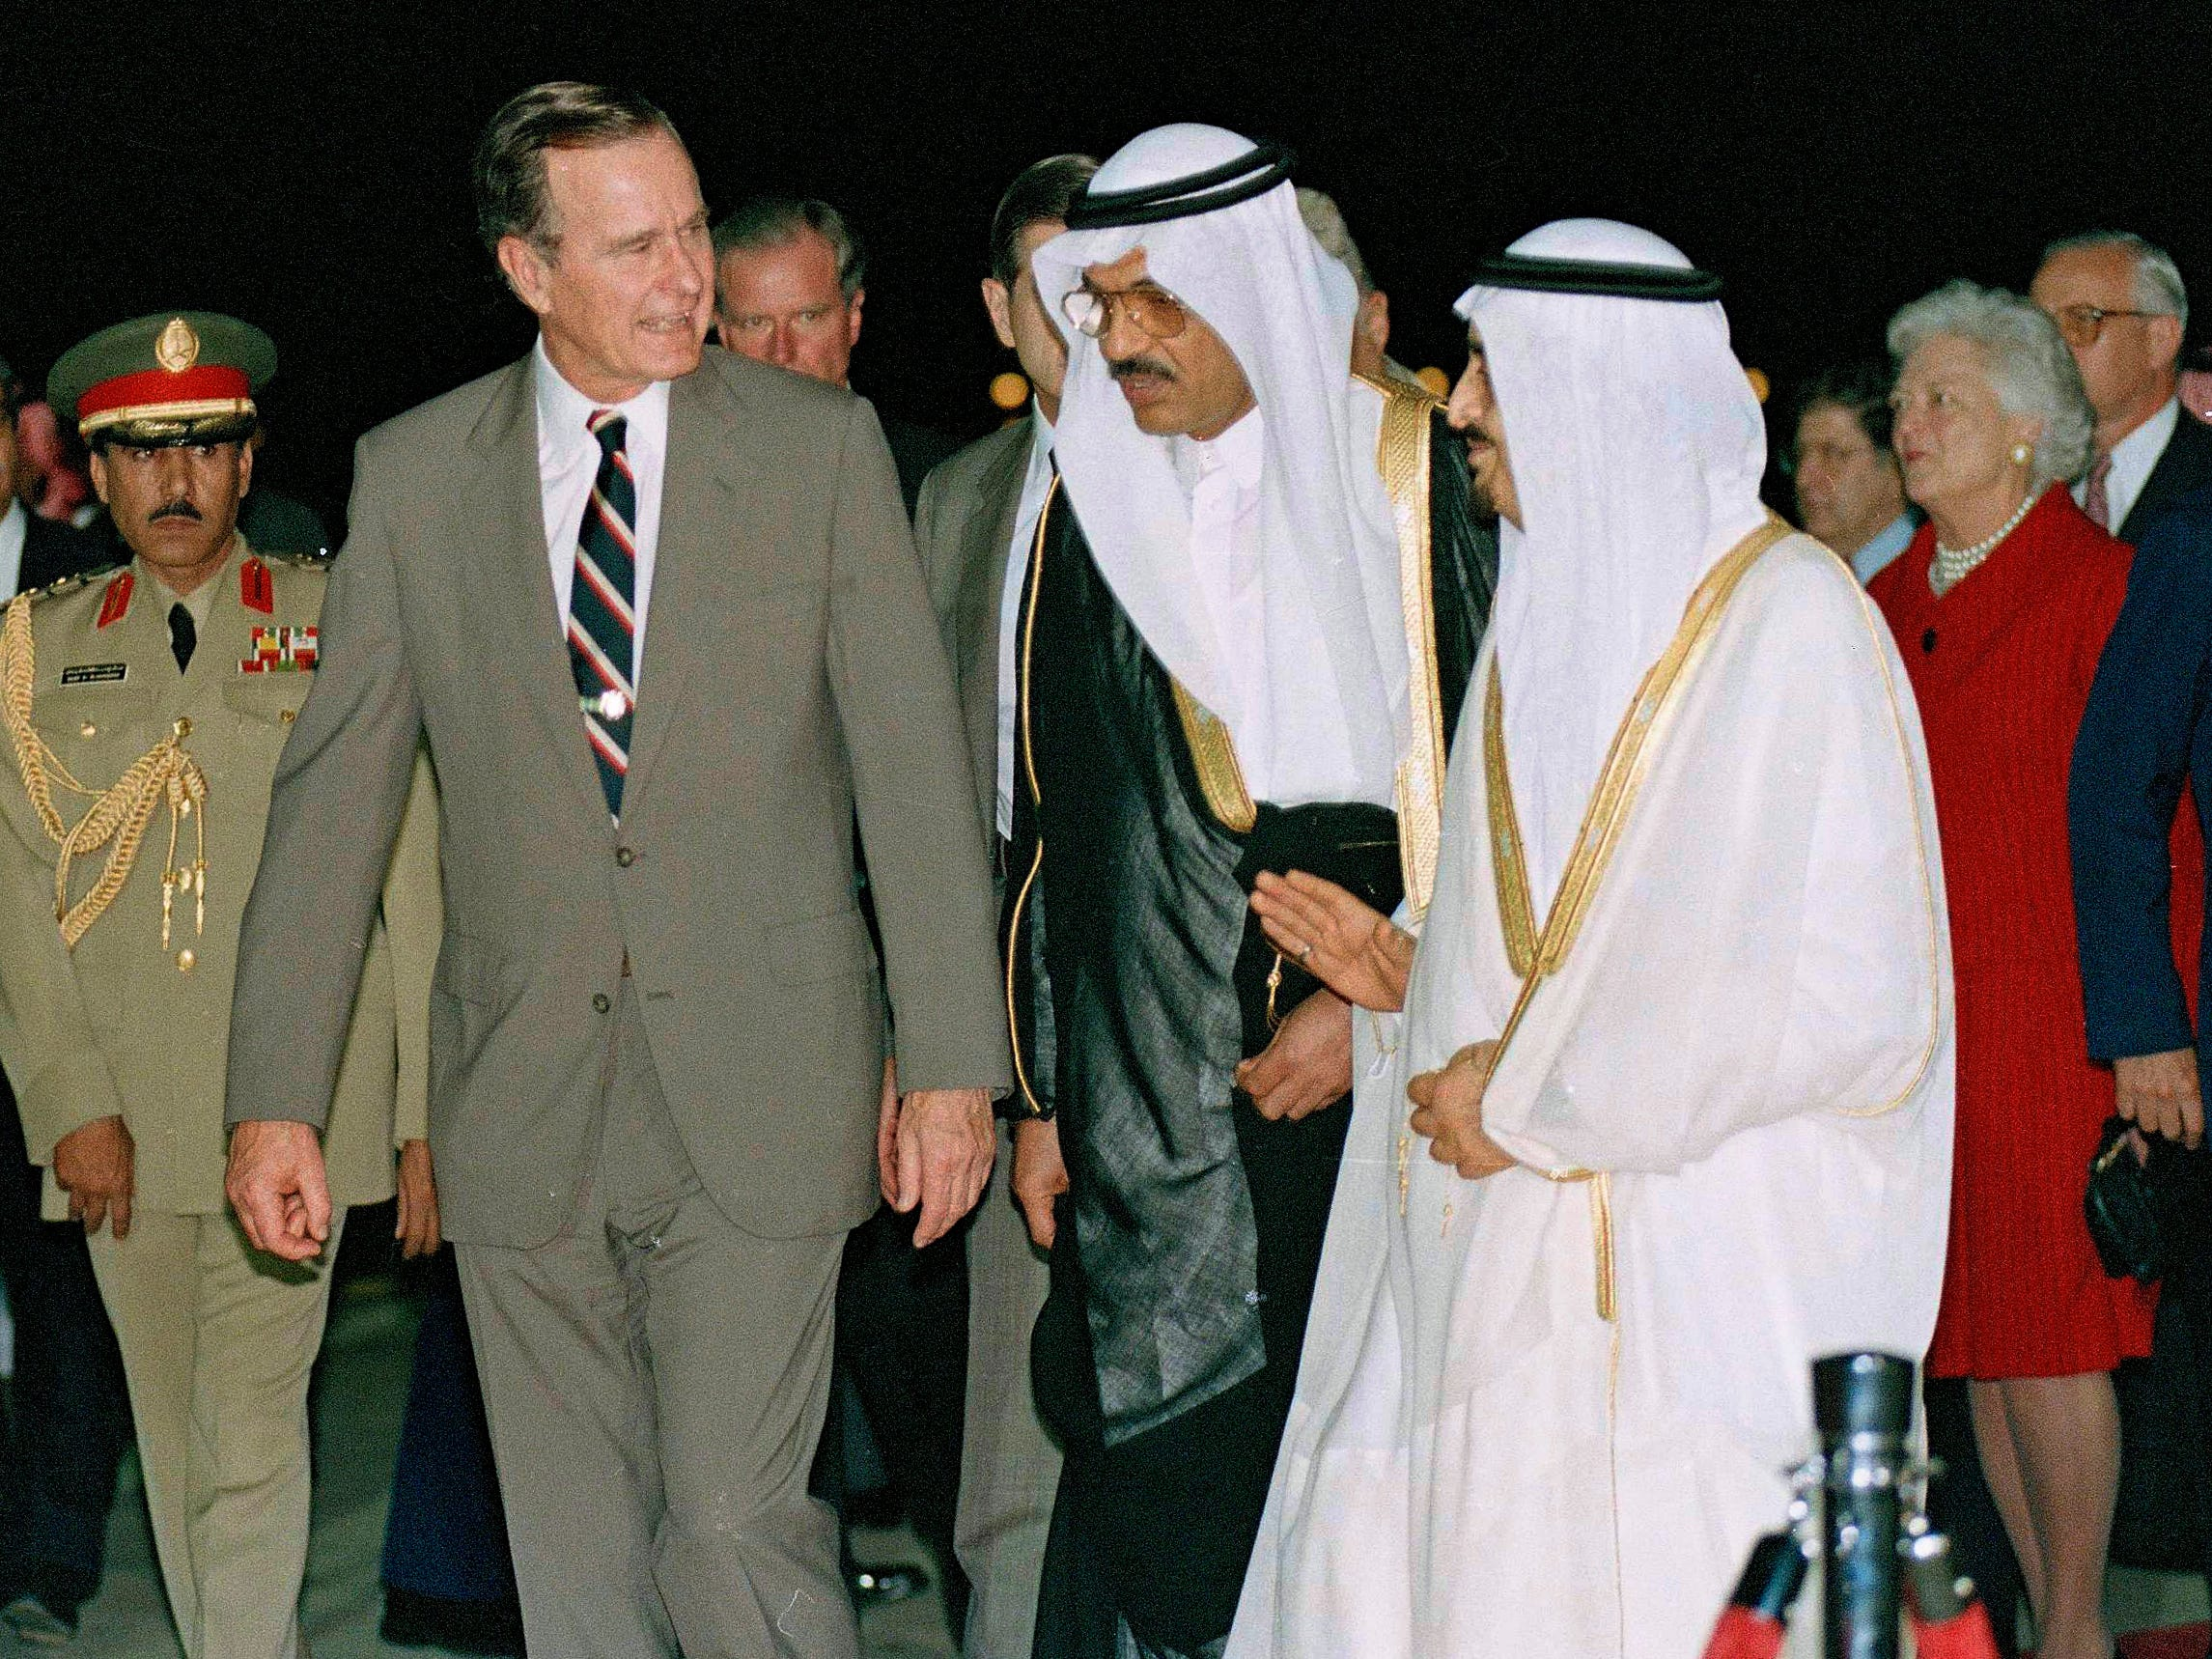 President George H.W. Bush is greeted by King Fahd on his arrival in Jeddah, Saudi Arabia on Nov. 21, 1990.